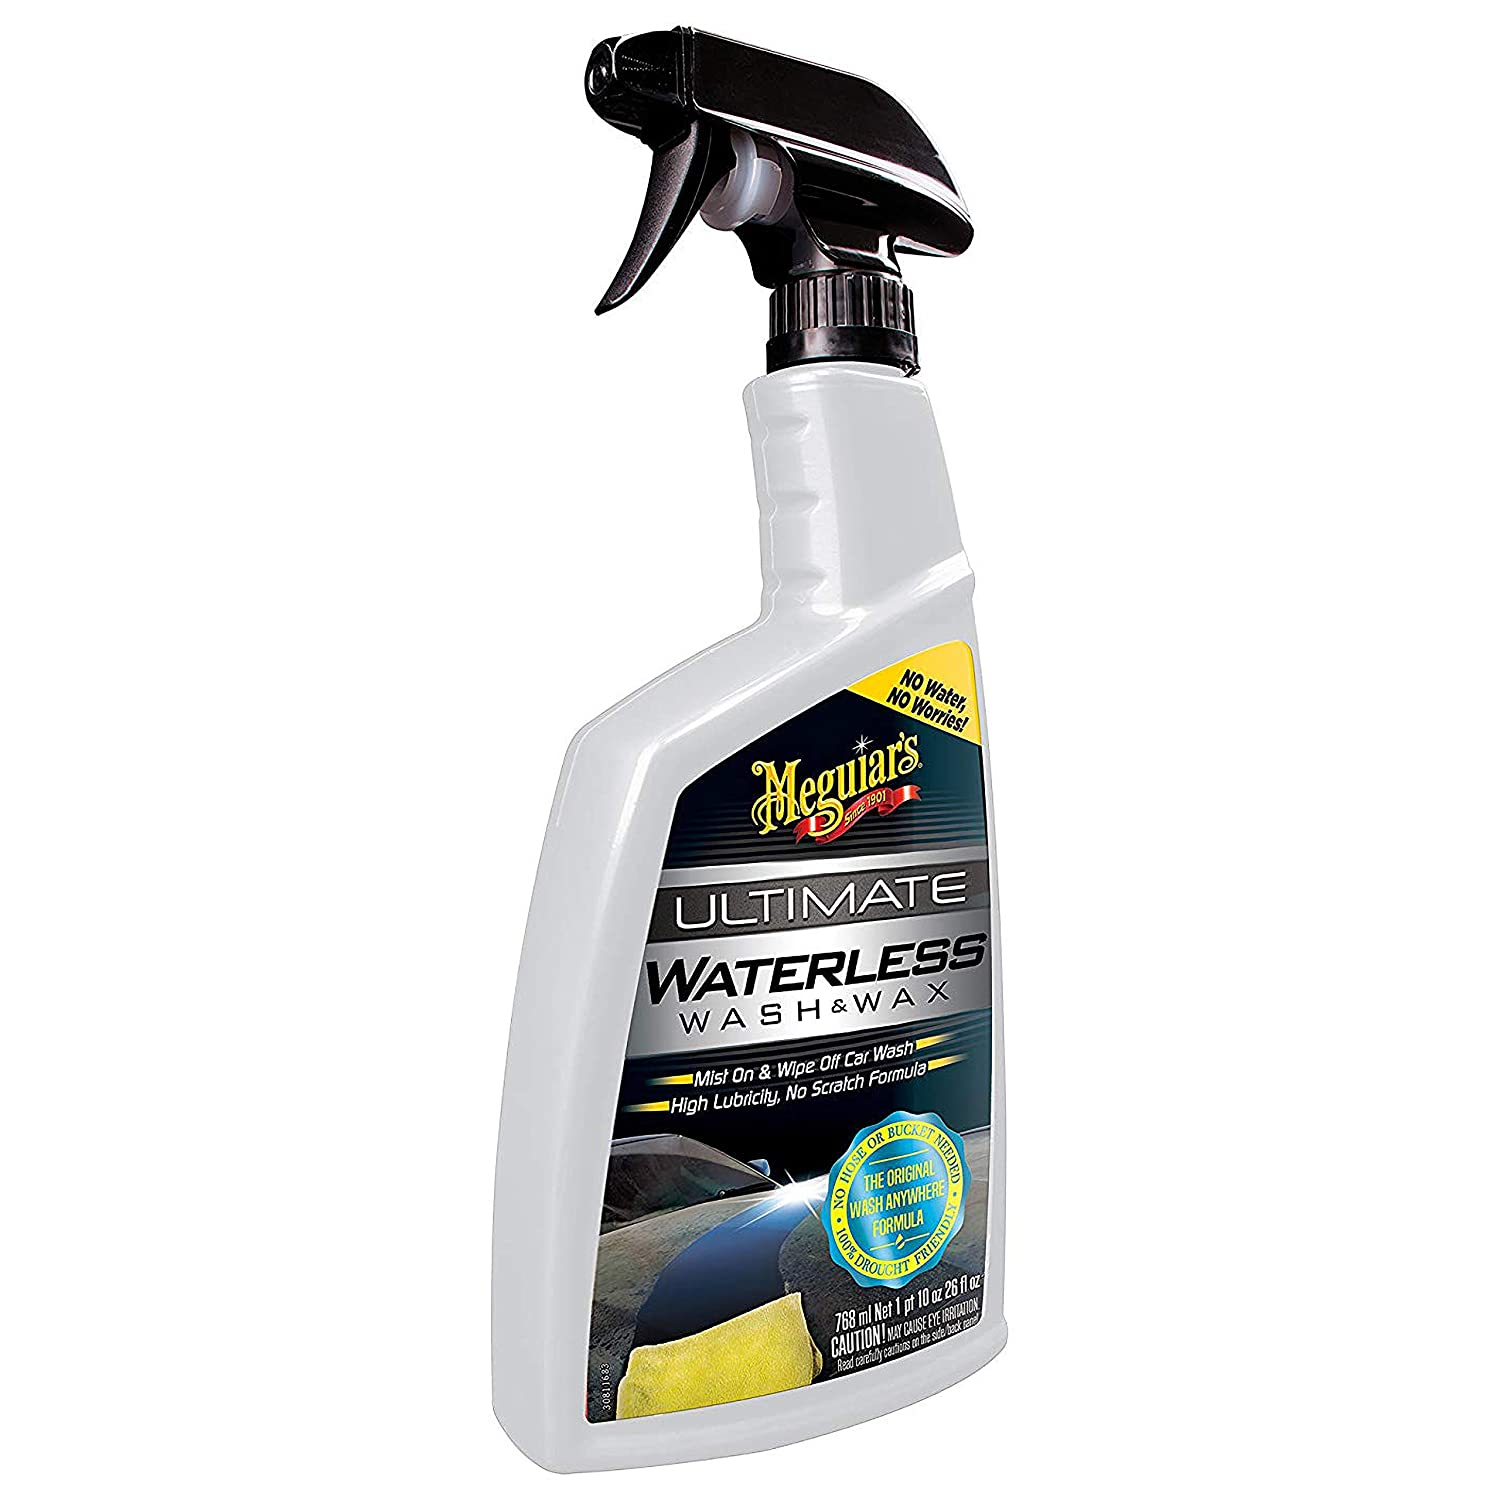 Meguiar's Ultimate Waterless Wash and Wax}